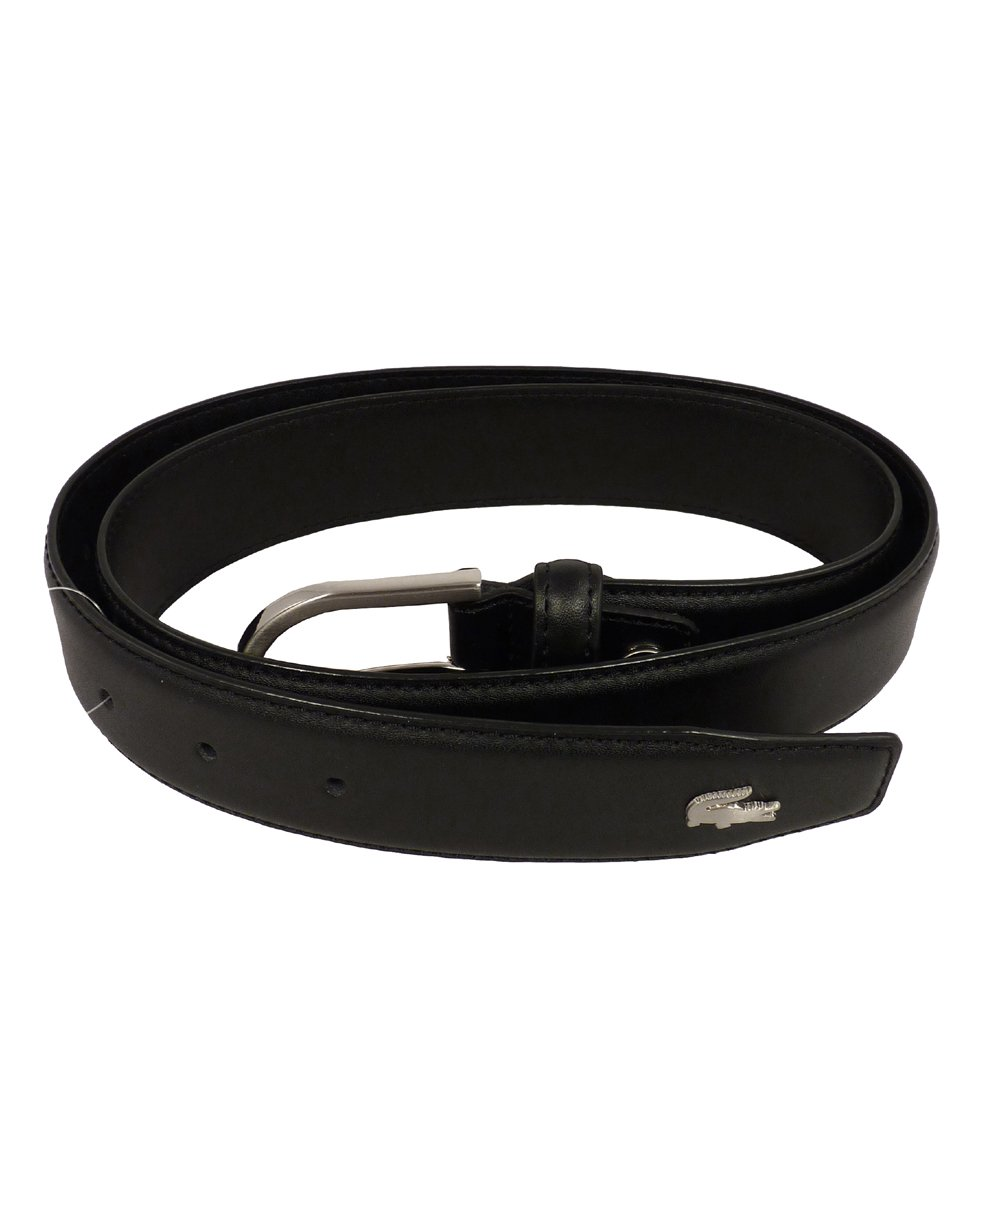 lacoste black leather metal logo belt rc1422 lacoste 56d0a40853